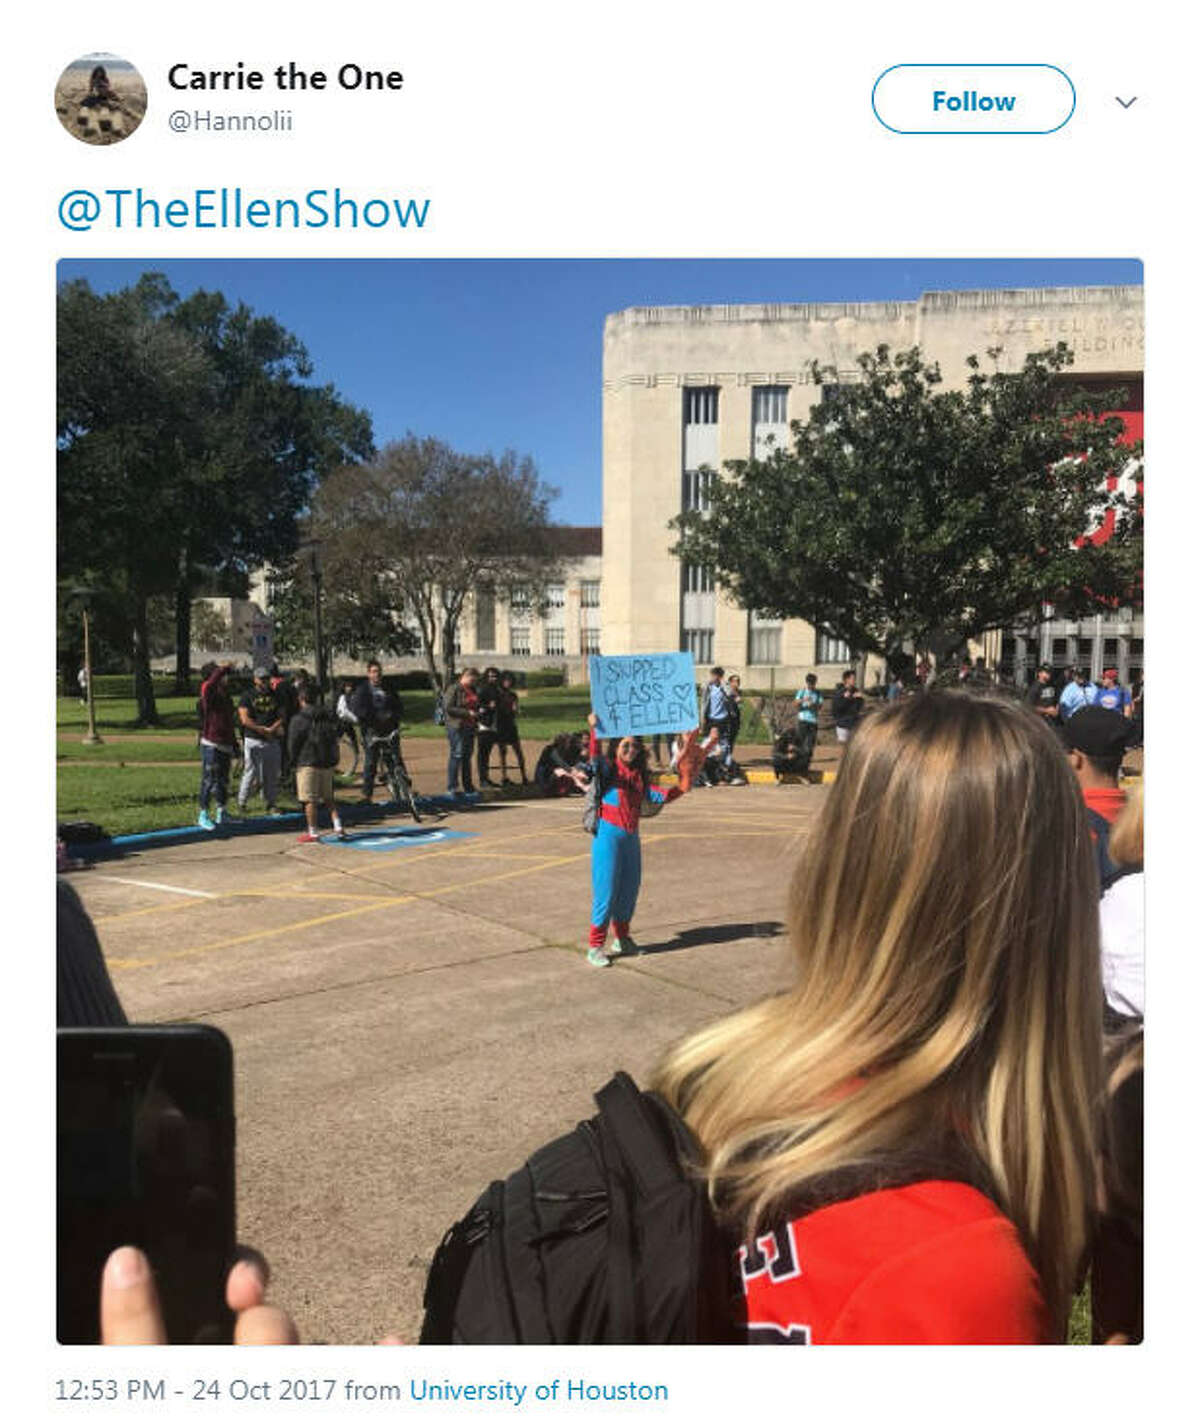 Students and fans have been gathering in front of the E. Cullen building at the University of Houston in anticipation after Ellen DeGeneres tweeted she'd be giving away World Series tickets at the campus. Photo: Twitter